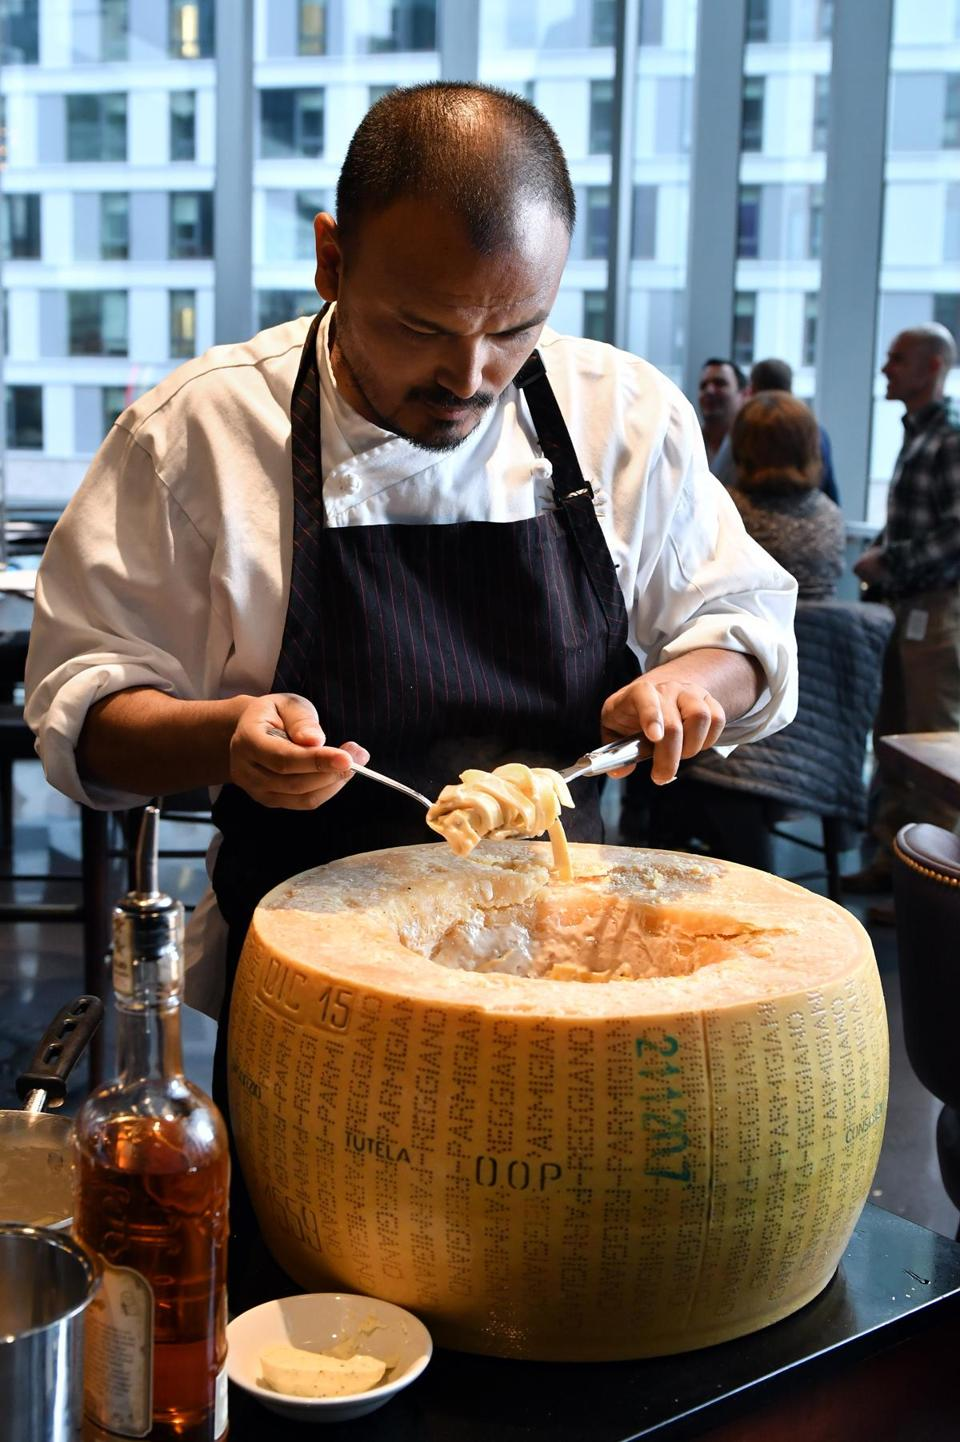 Executive Chef Nimesh Maharjan prepares Tagliatelle at Tartufo finished in the hollow of a Parmesan cheese wheel at Tuscan Kitchen in the Seaport. Josh Reynolds for The Boston Globe (Lifestyle, first)